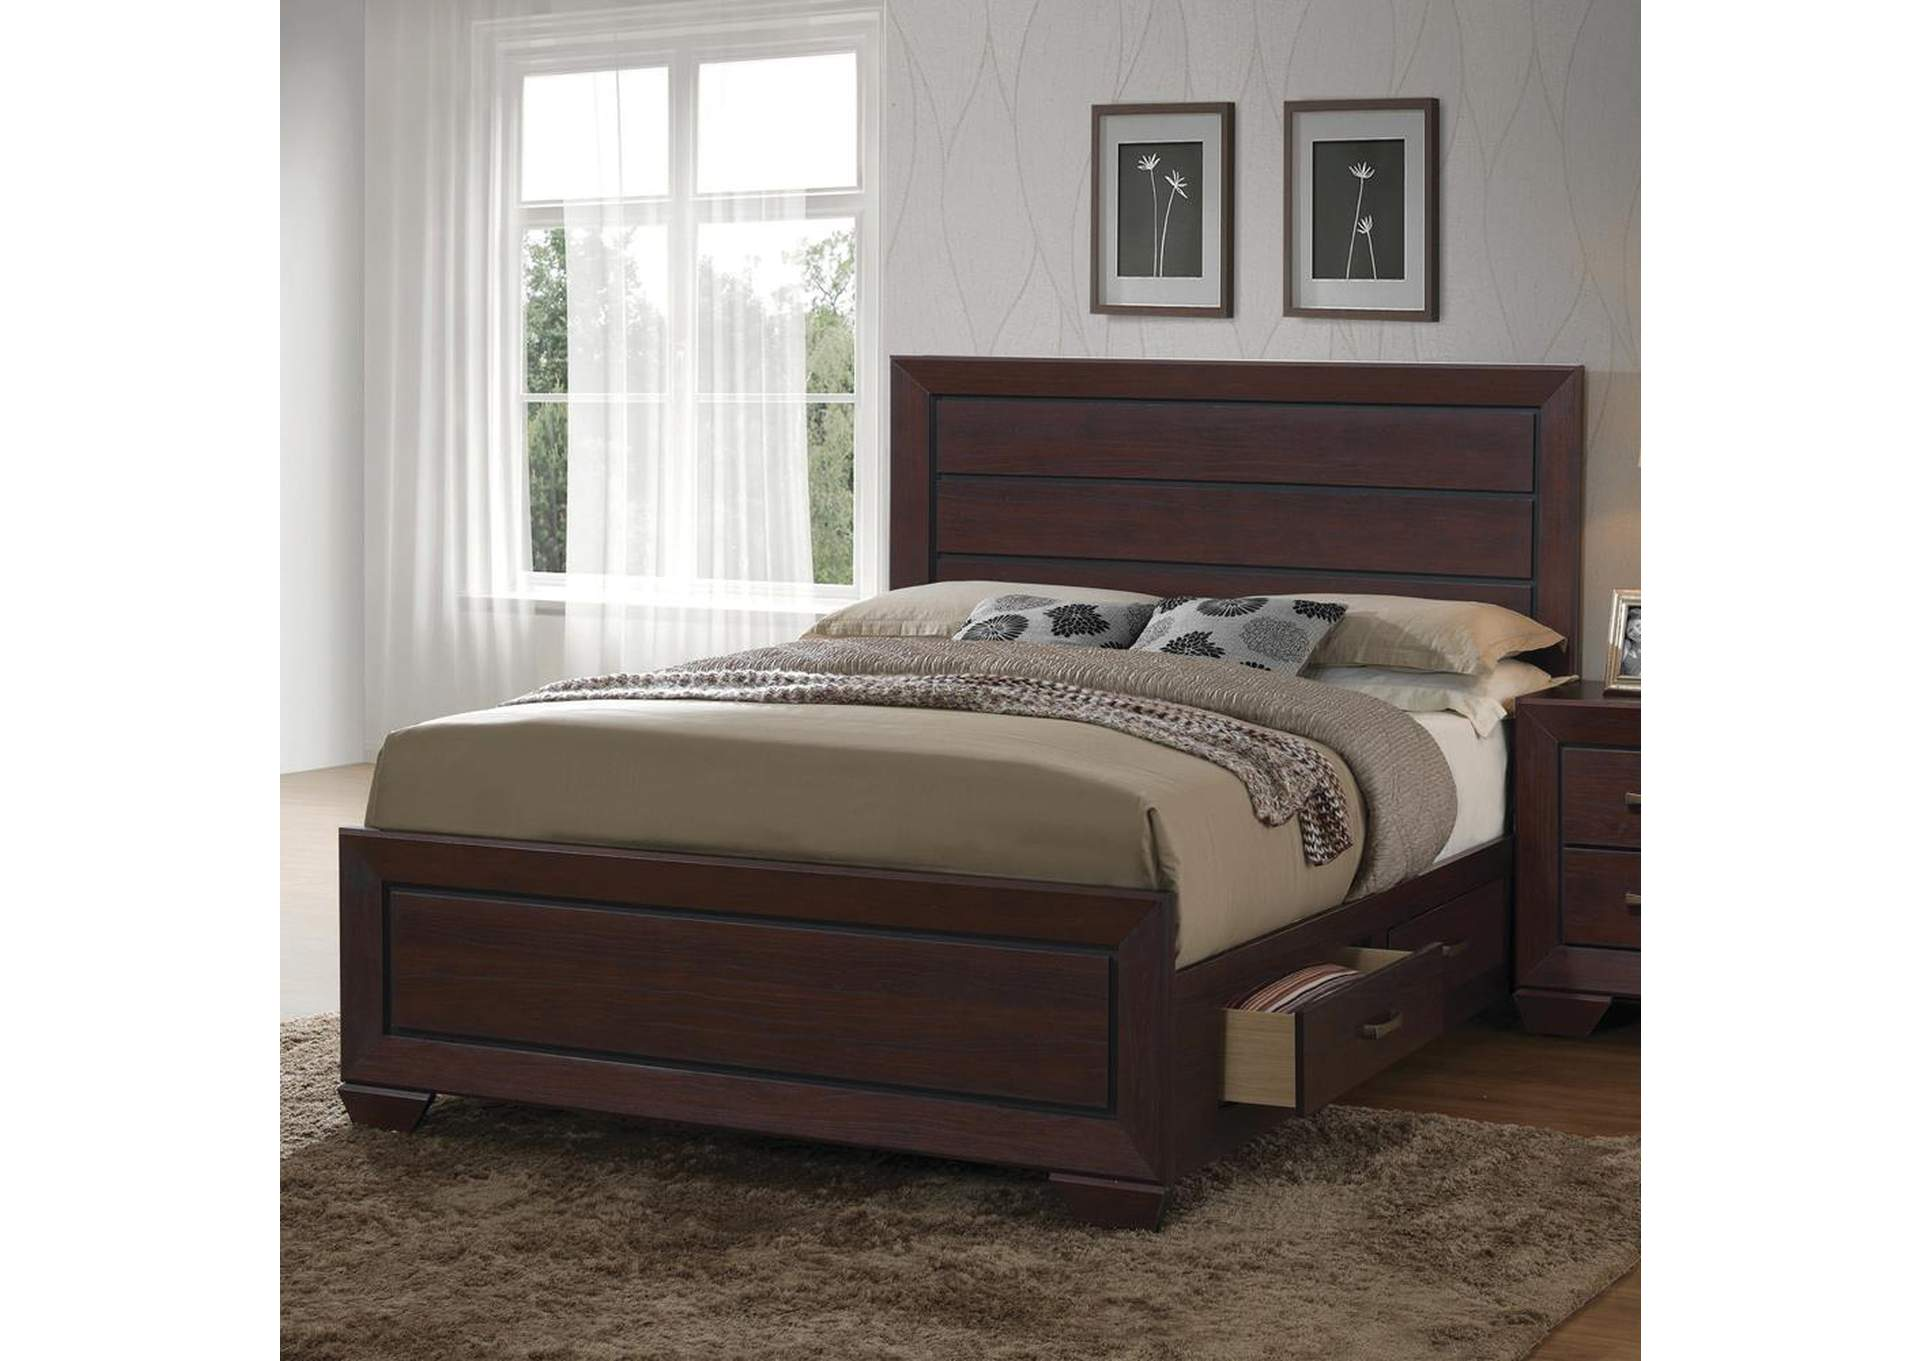 Fenbrook Dark Cocoa Queen Storage Bed,Coaster Furniture